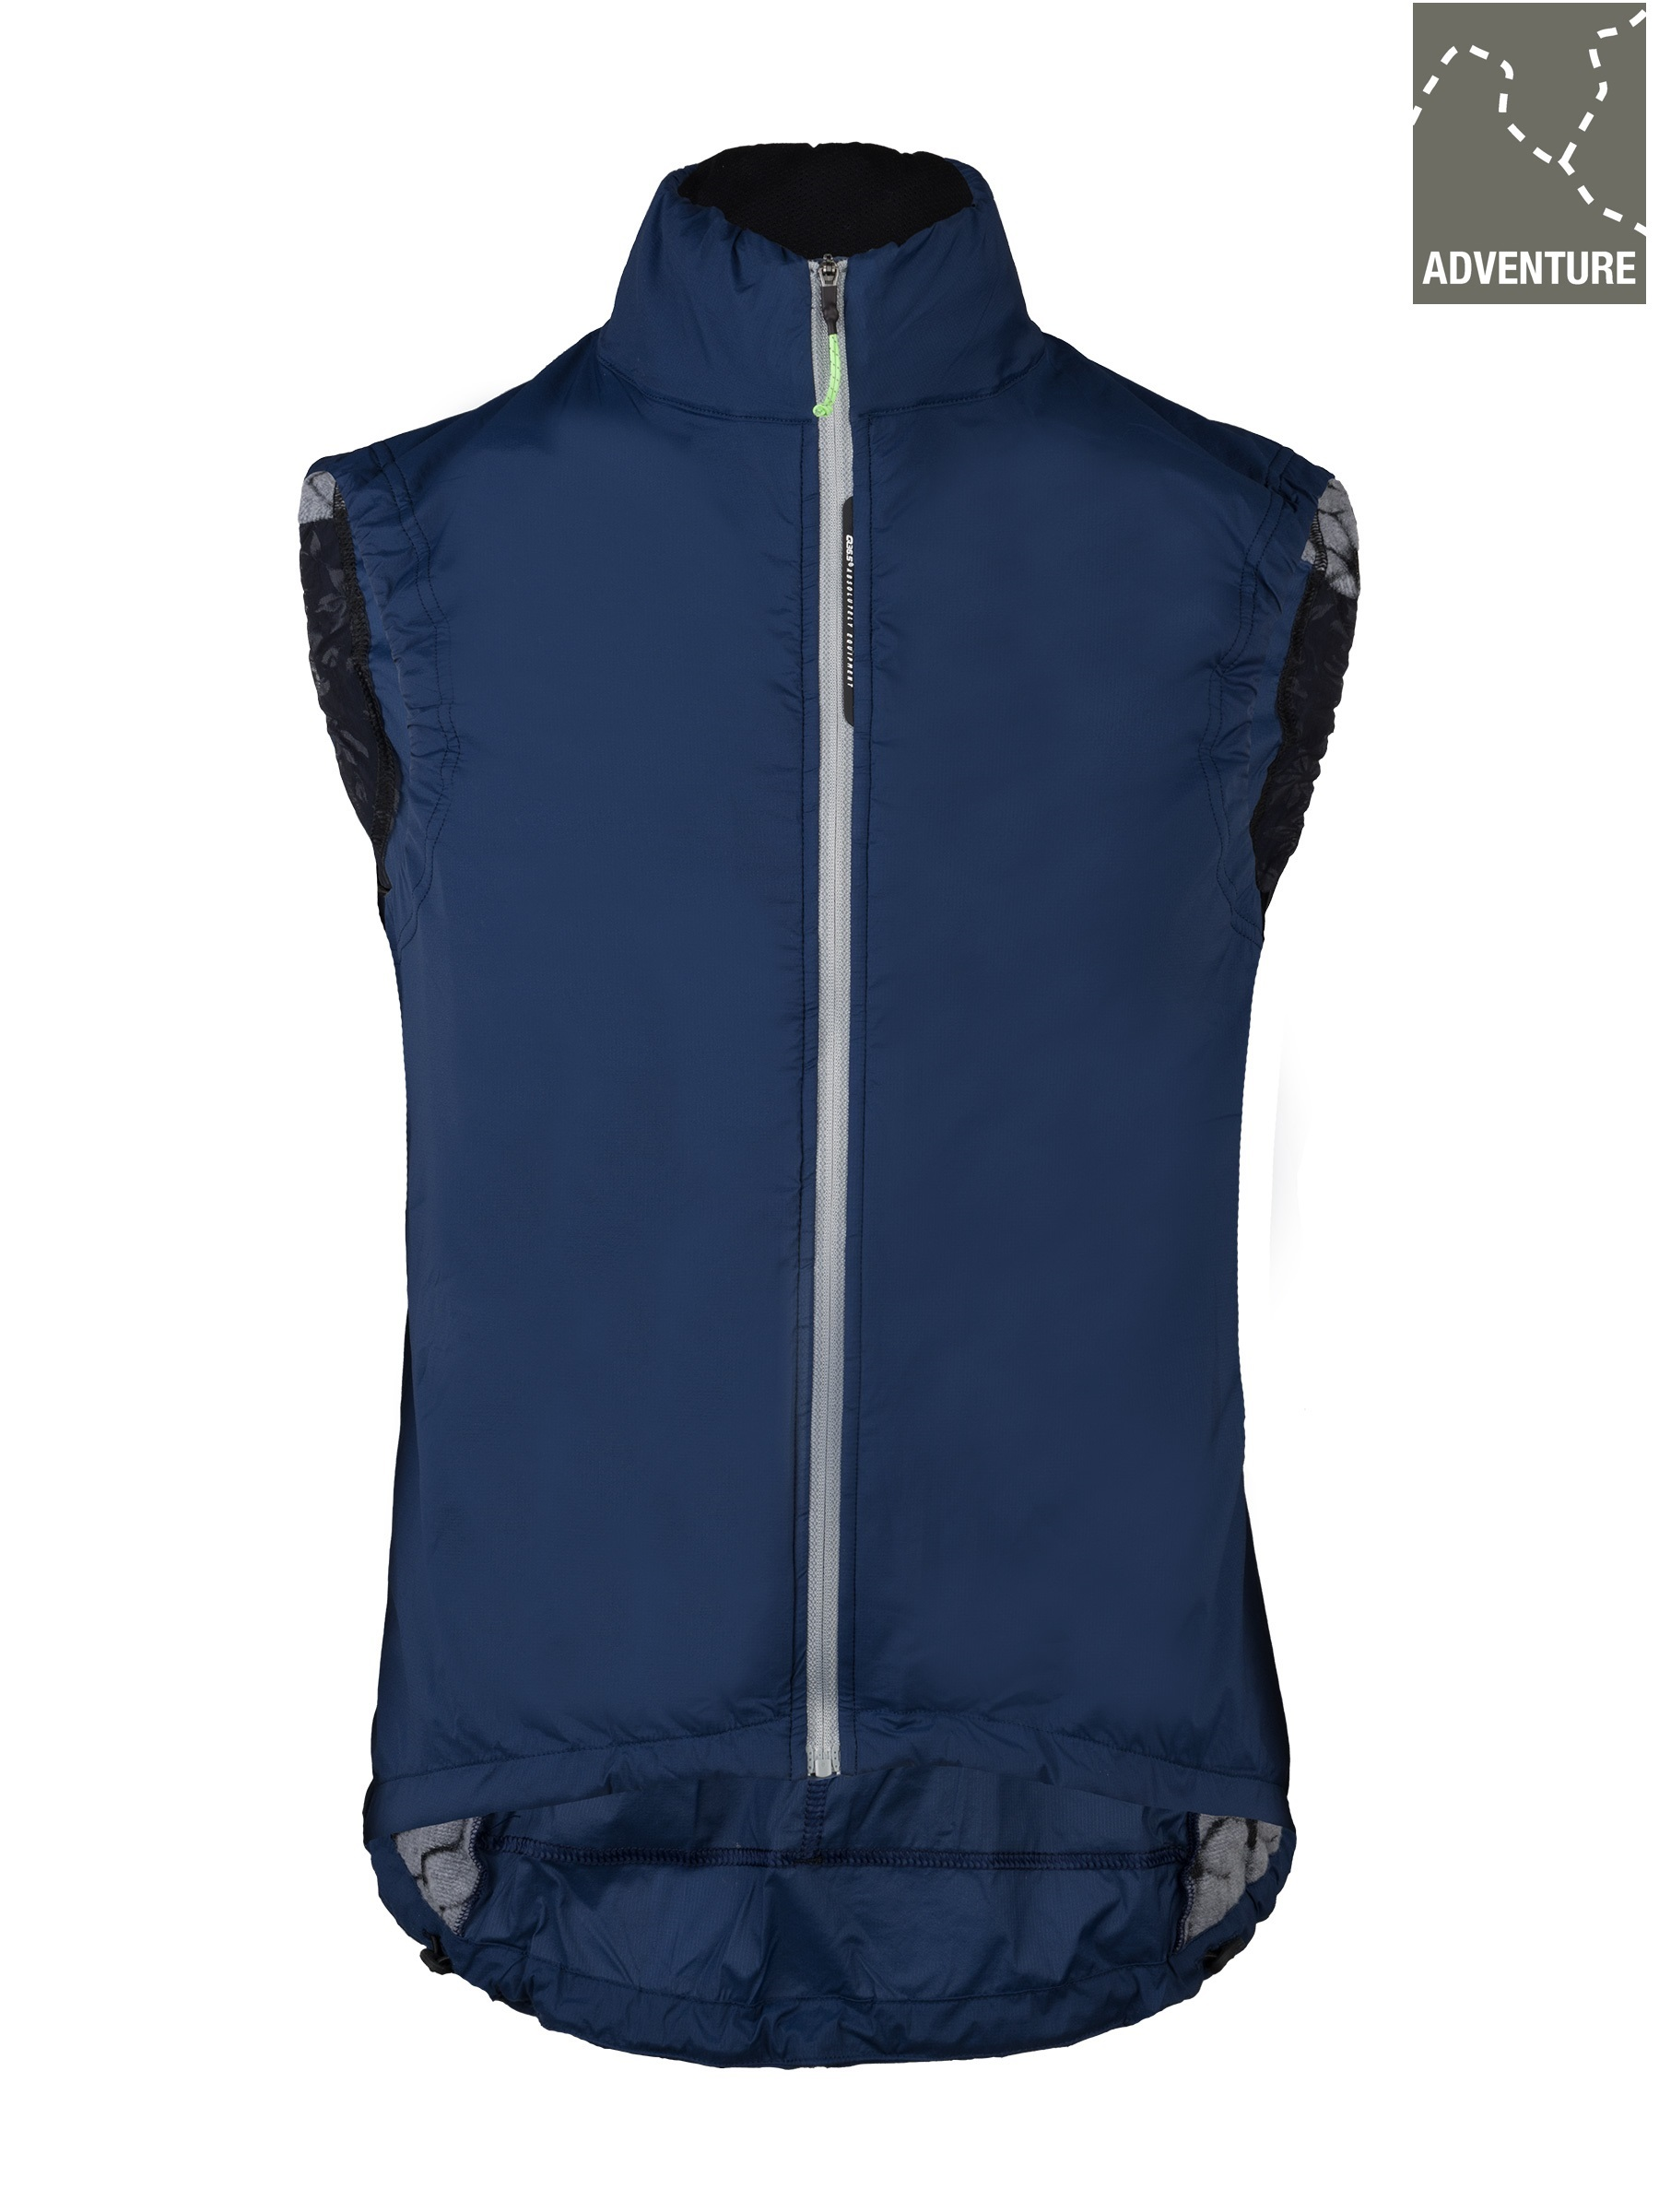 womens-adventure-cycling-insulation-vest-navy-061W.14-product